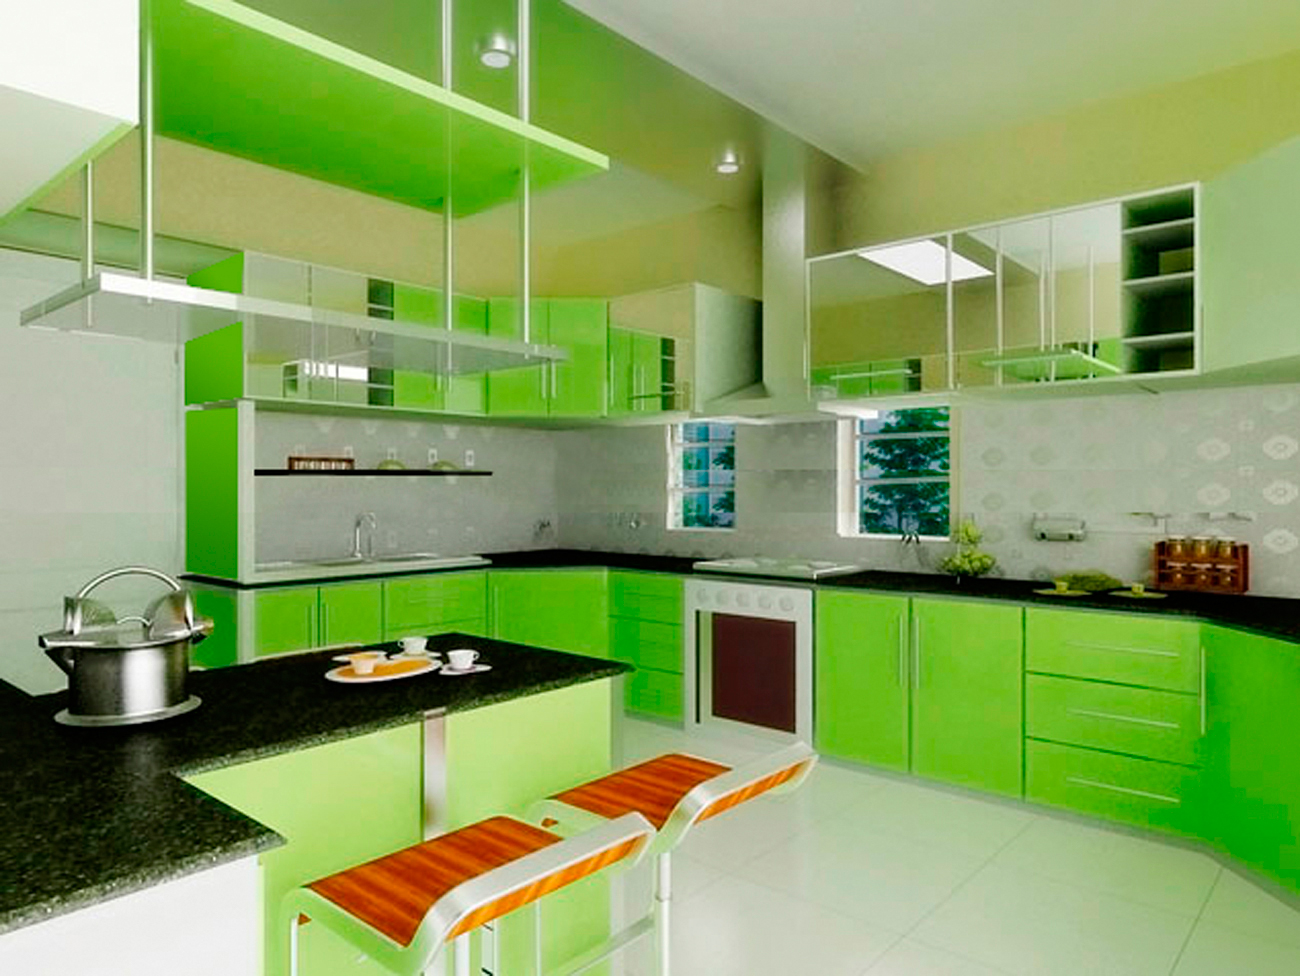 kitchen design ideas green photo - 6